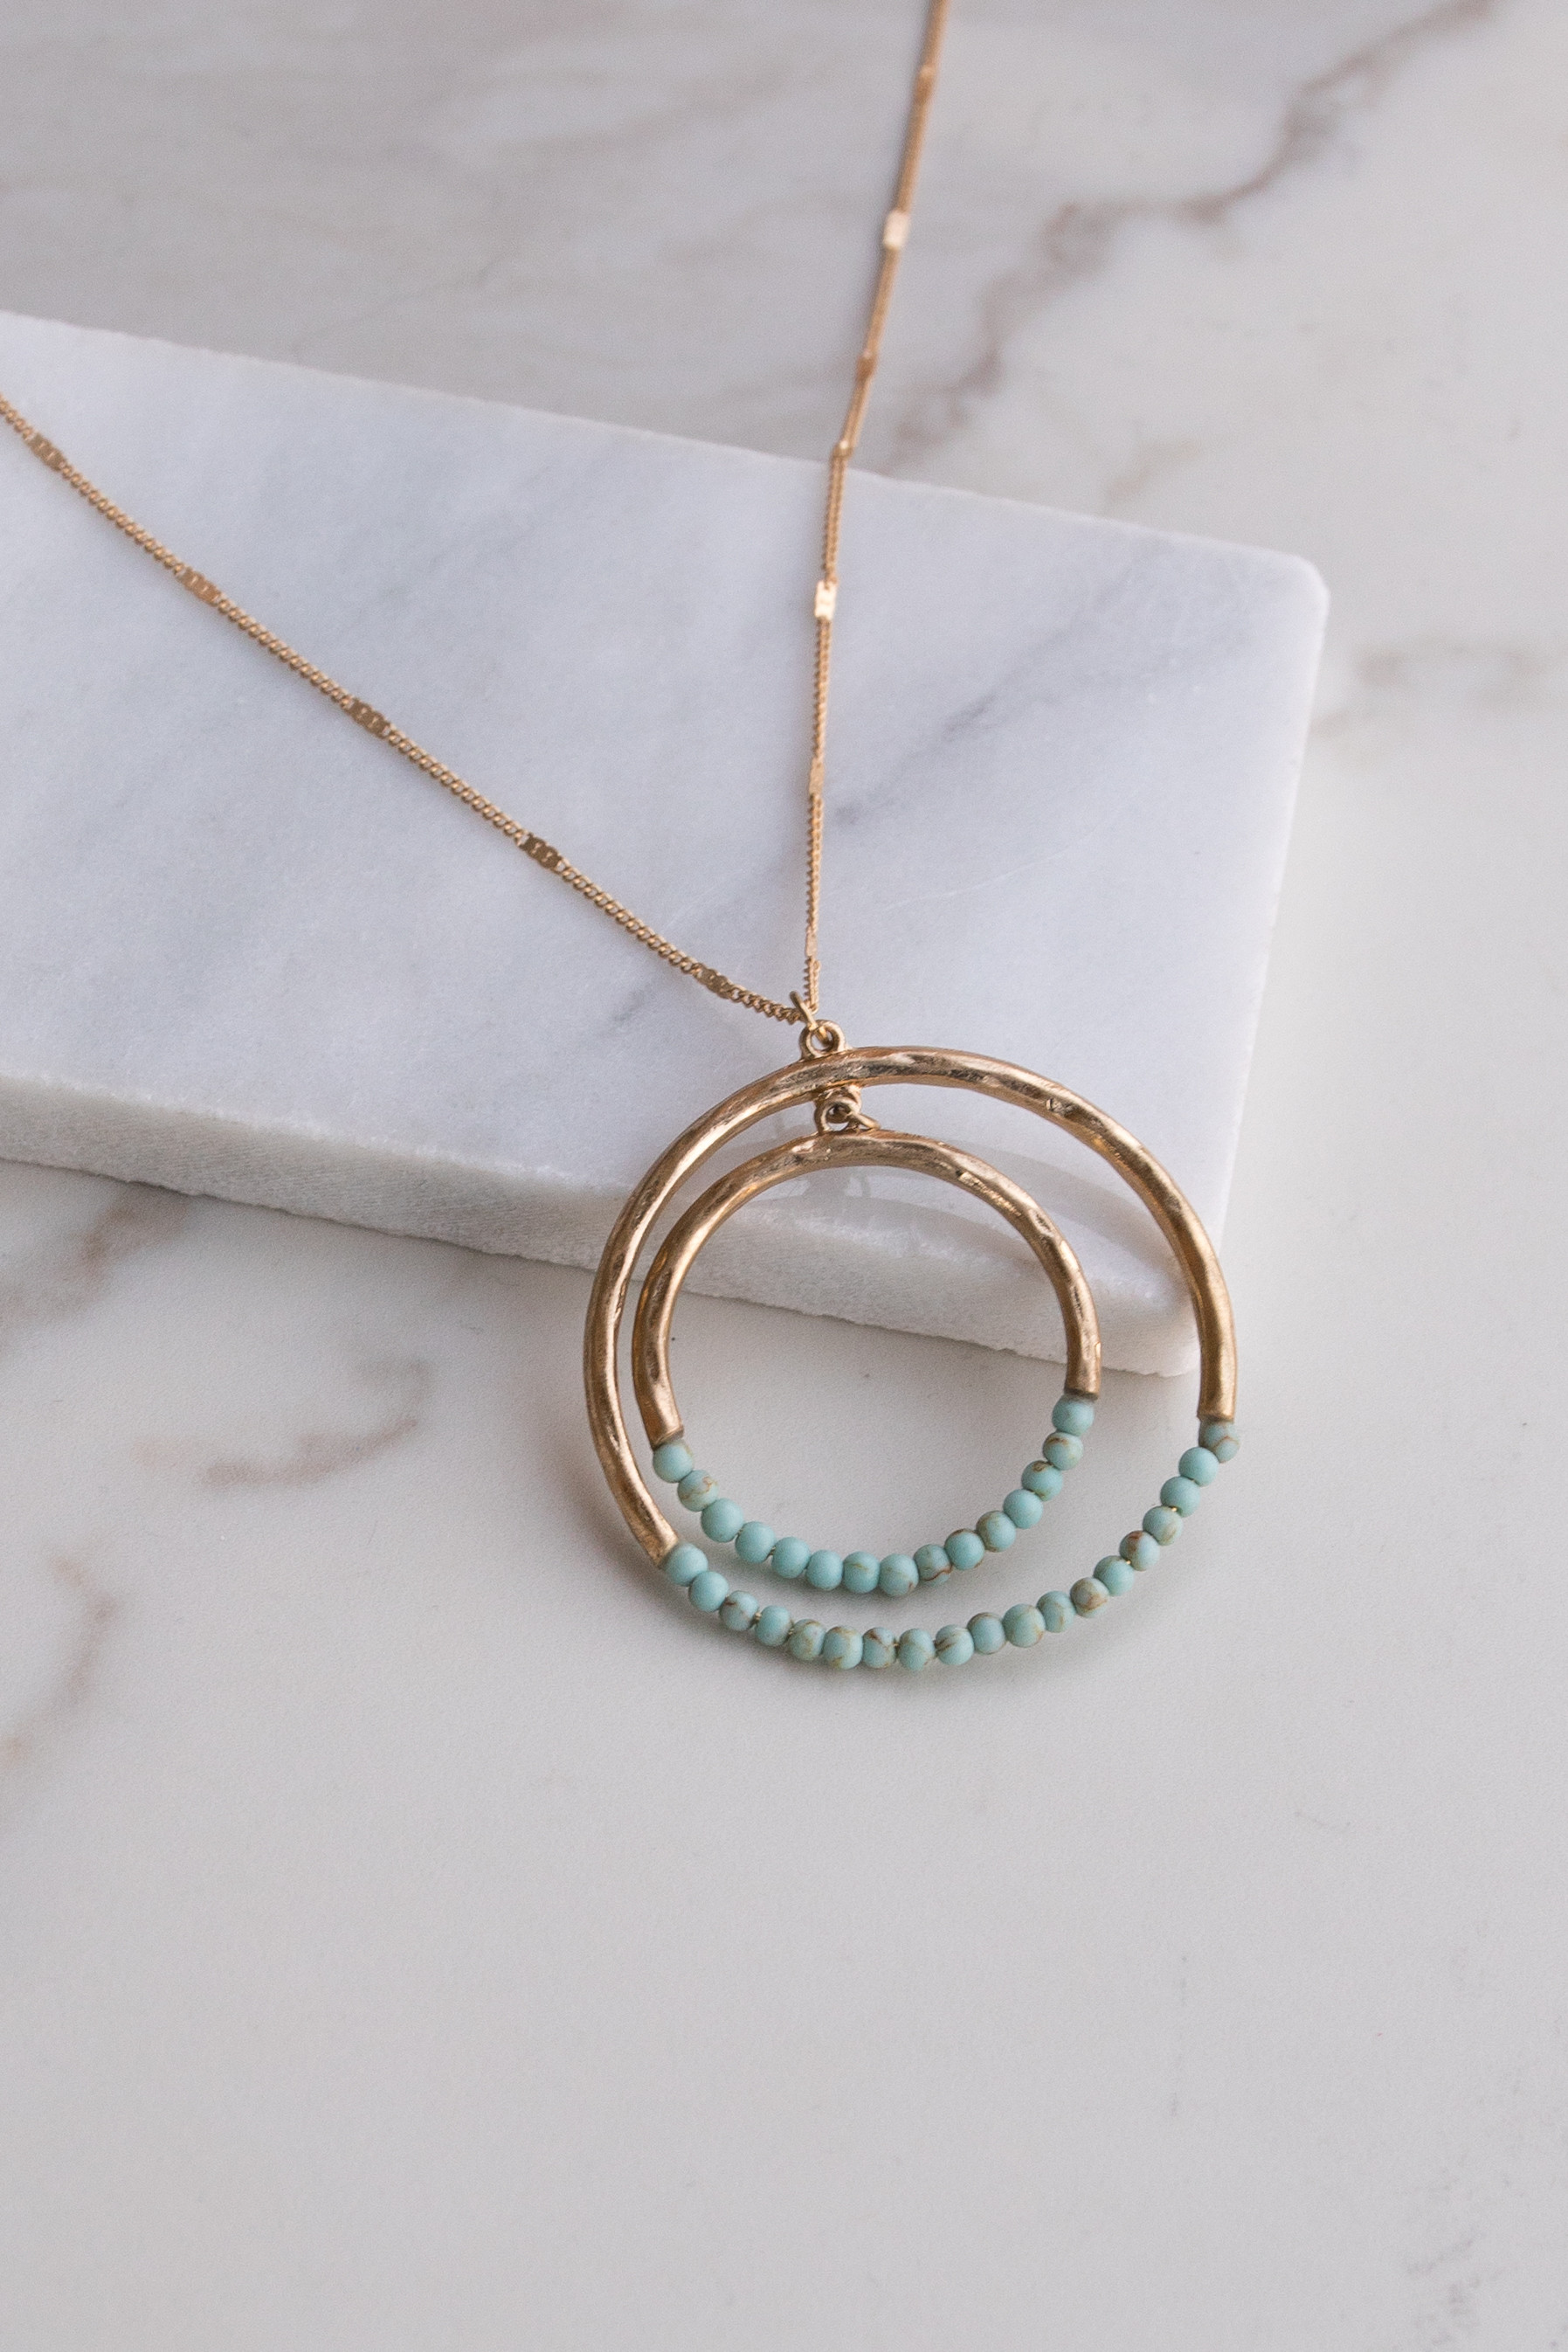 Gold Necklace with Double Hoop Pendant and Bead Details